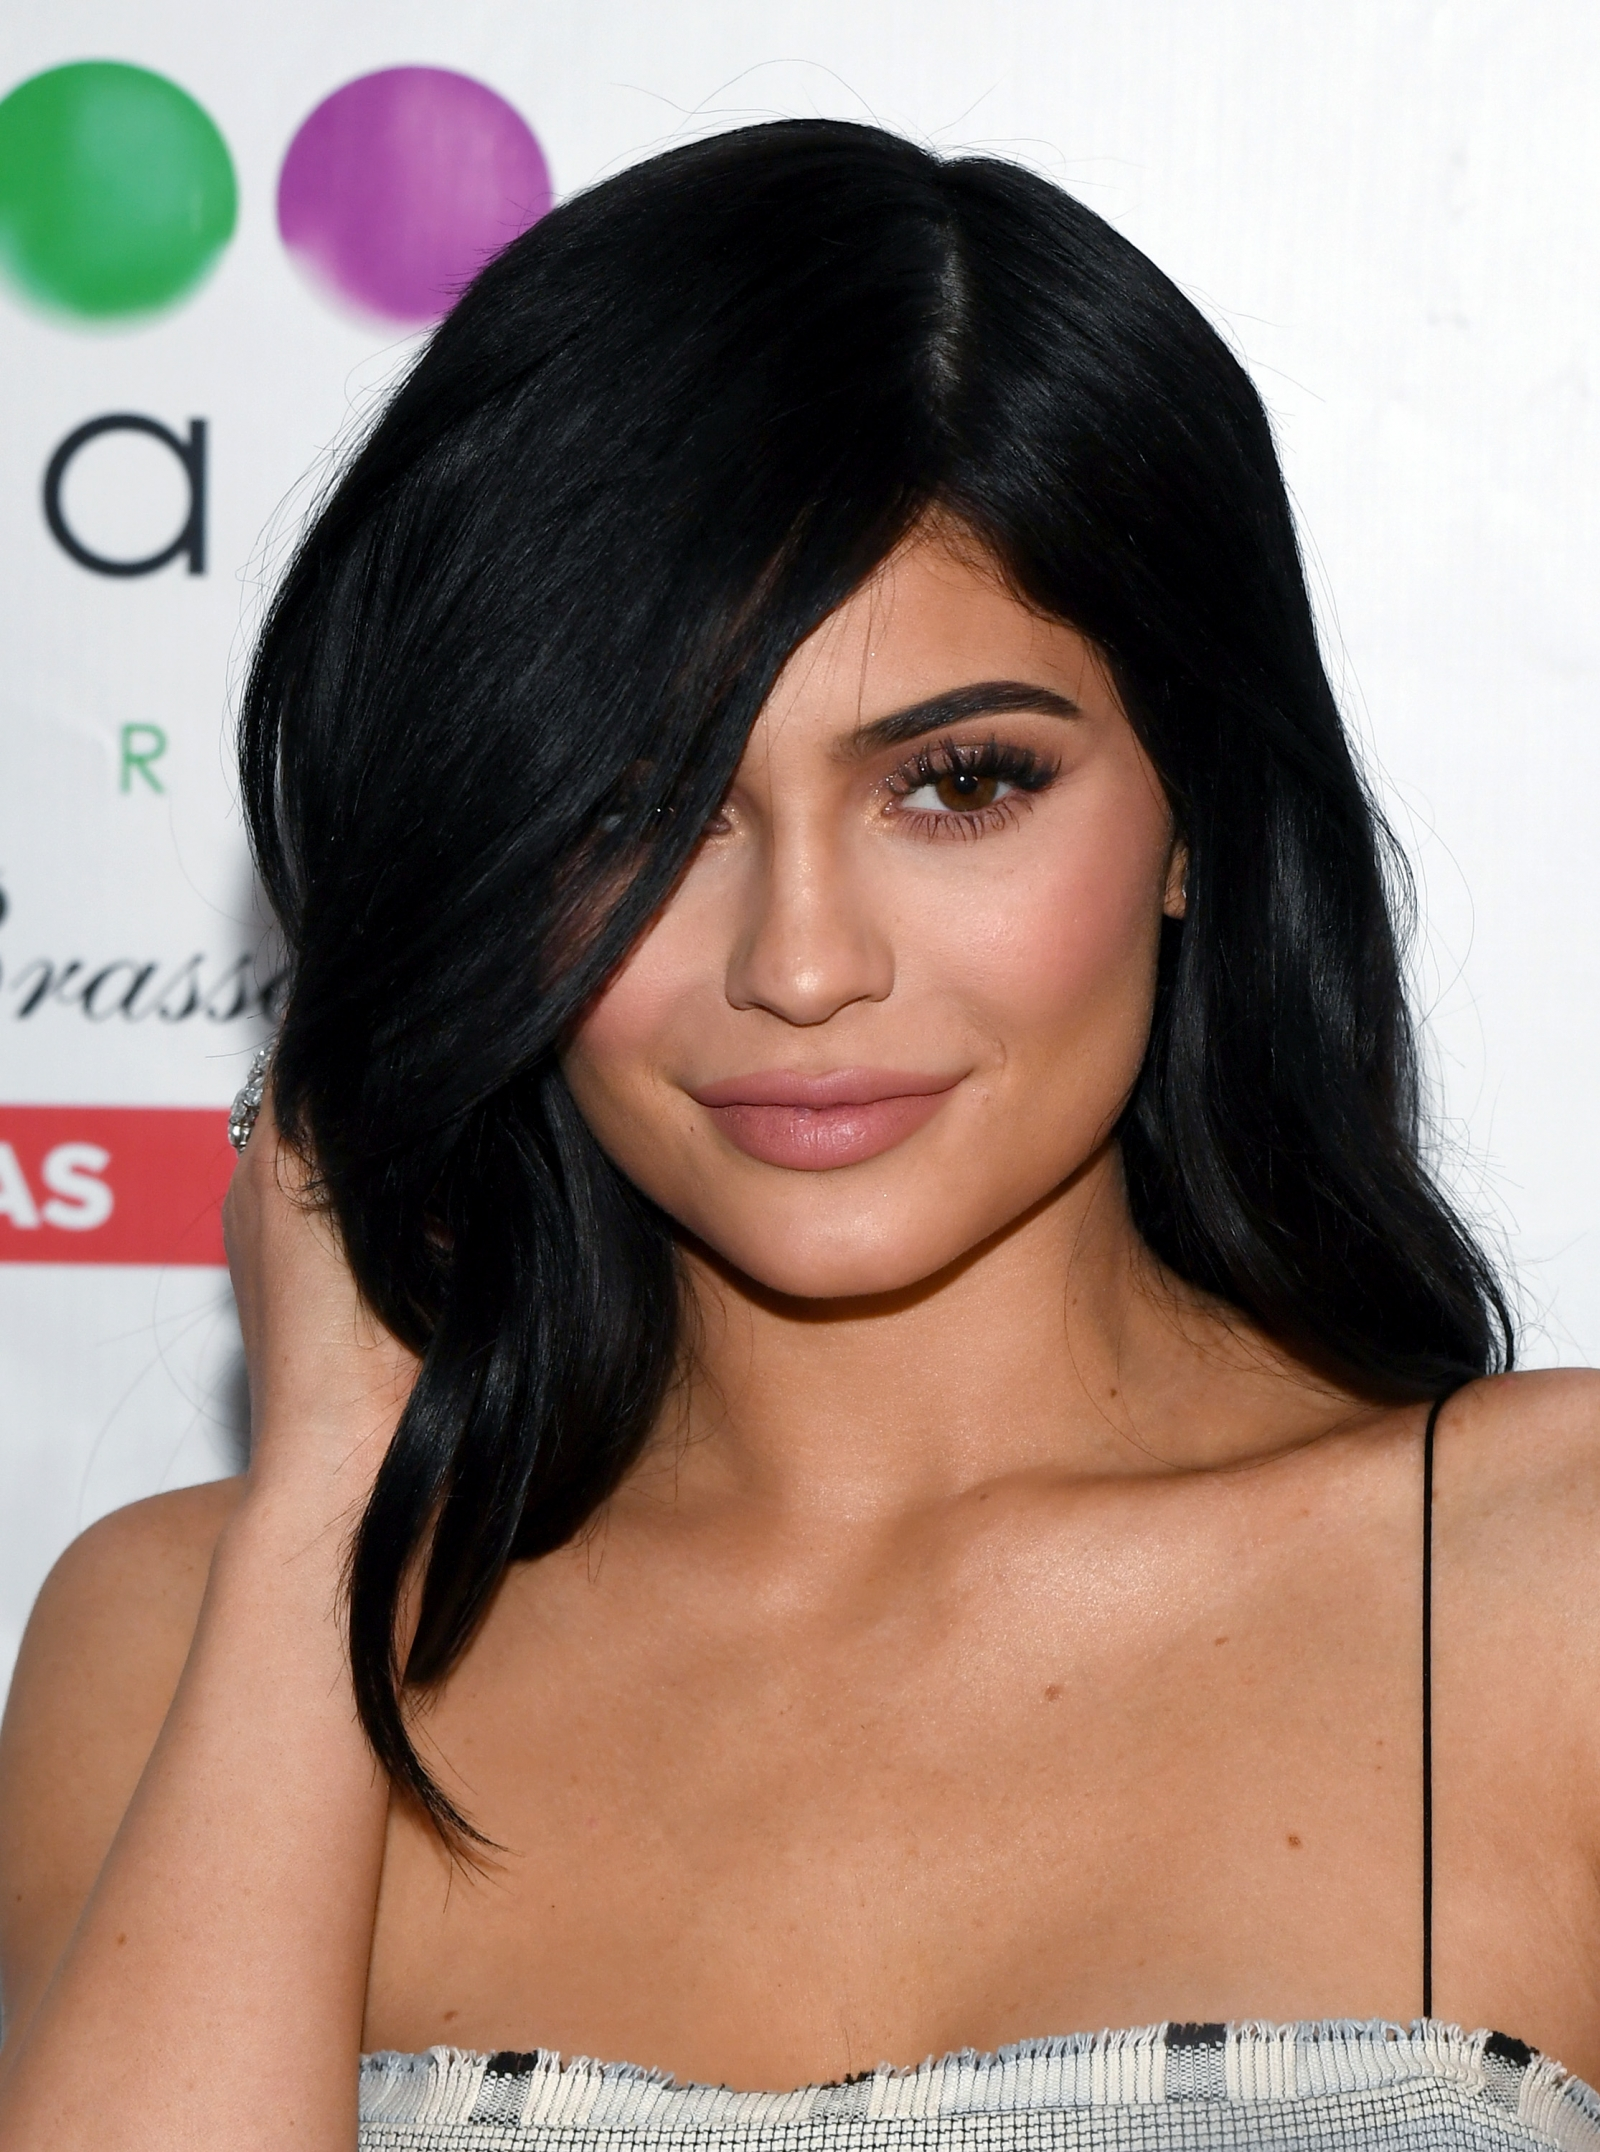 Kylie's Jenner's large lips giving her a 'fake' and 'abnormal look' say plastic surgeons